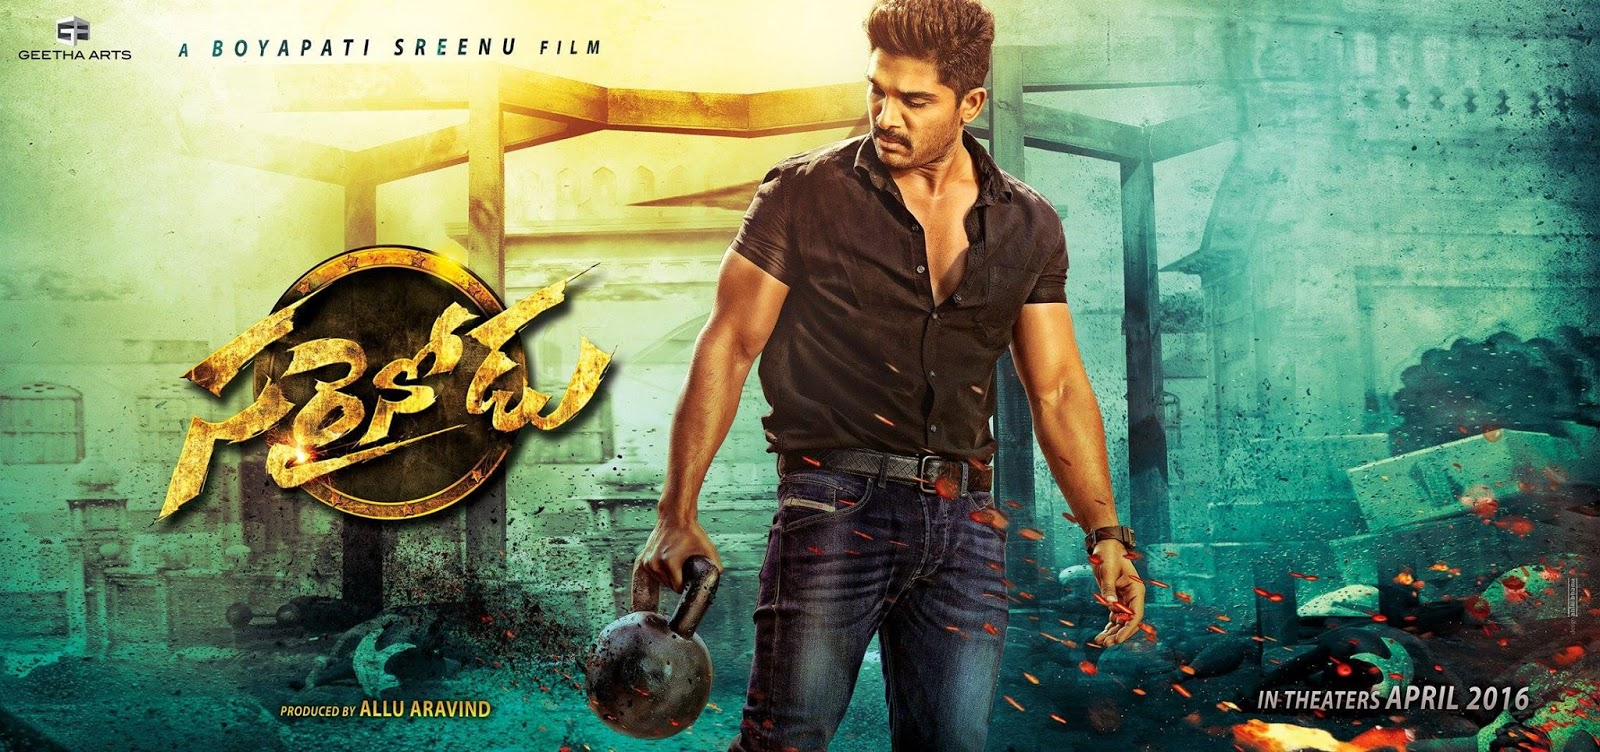 Sarrainodu First look of Allu Arjun has been trending and the much awaited film of Allu Arjun in Boyapati's direction is to be released in April 2016. Check out the latest news, trends, Gossips, Box office updates of Sarrainodu.